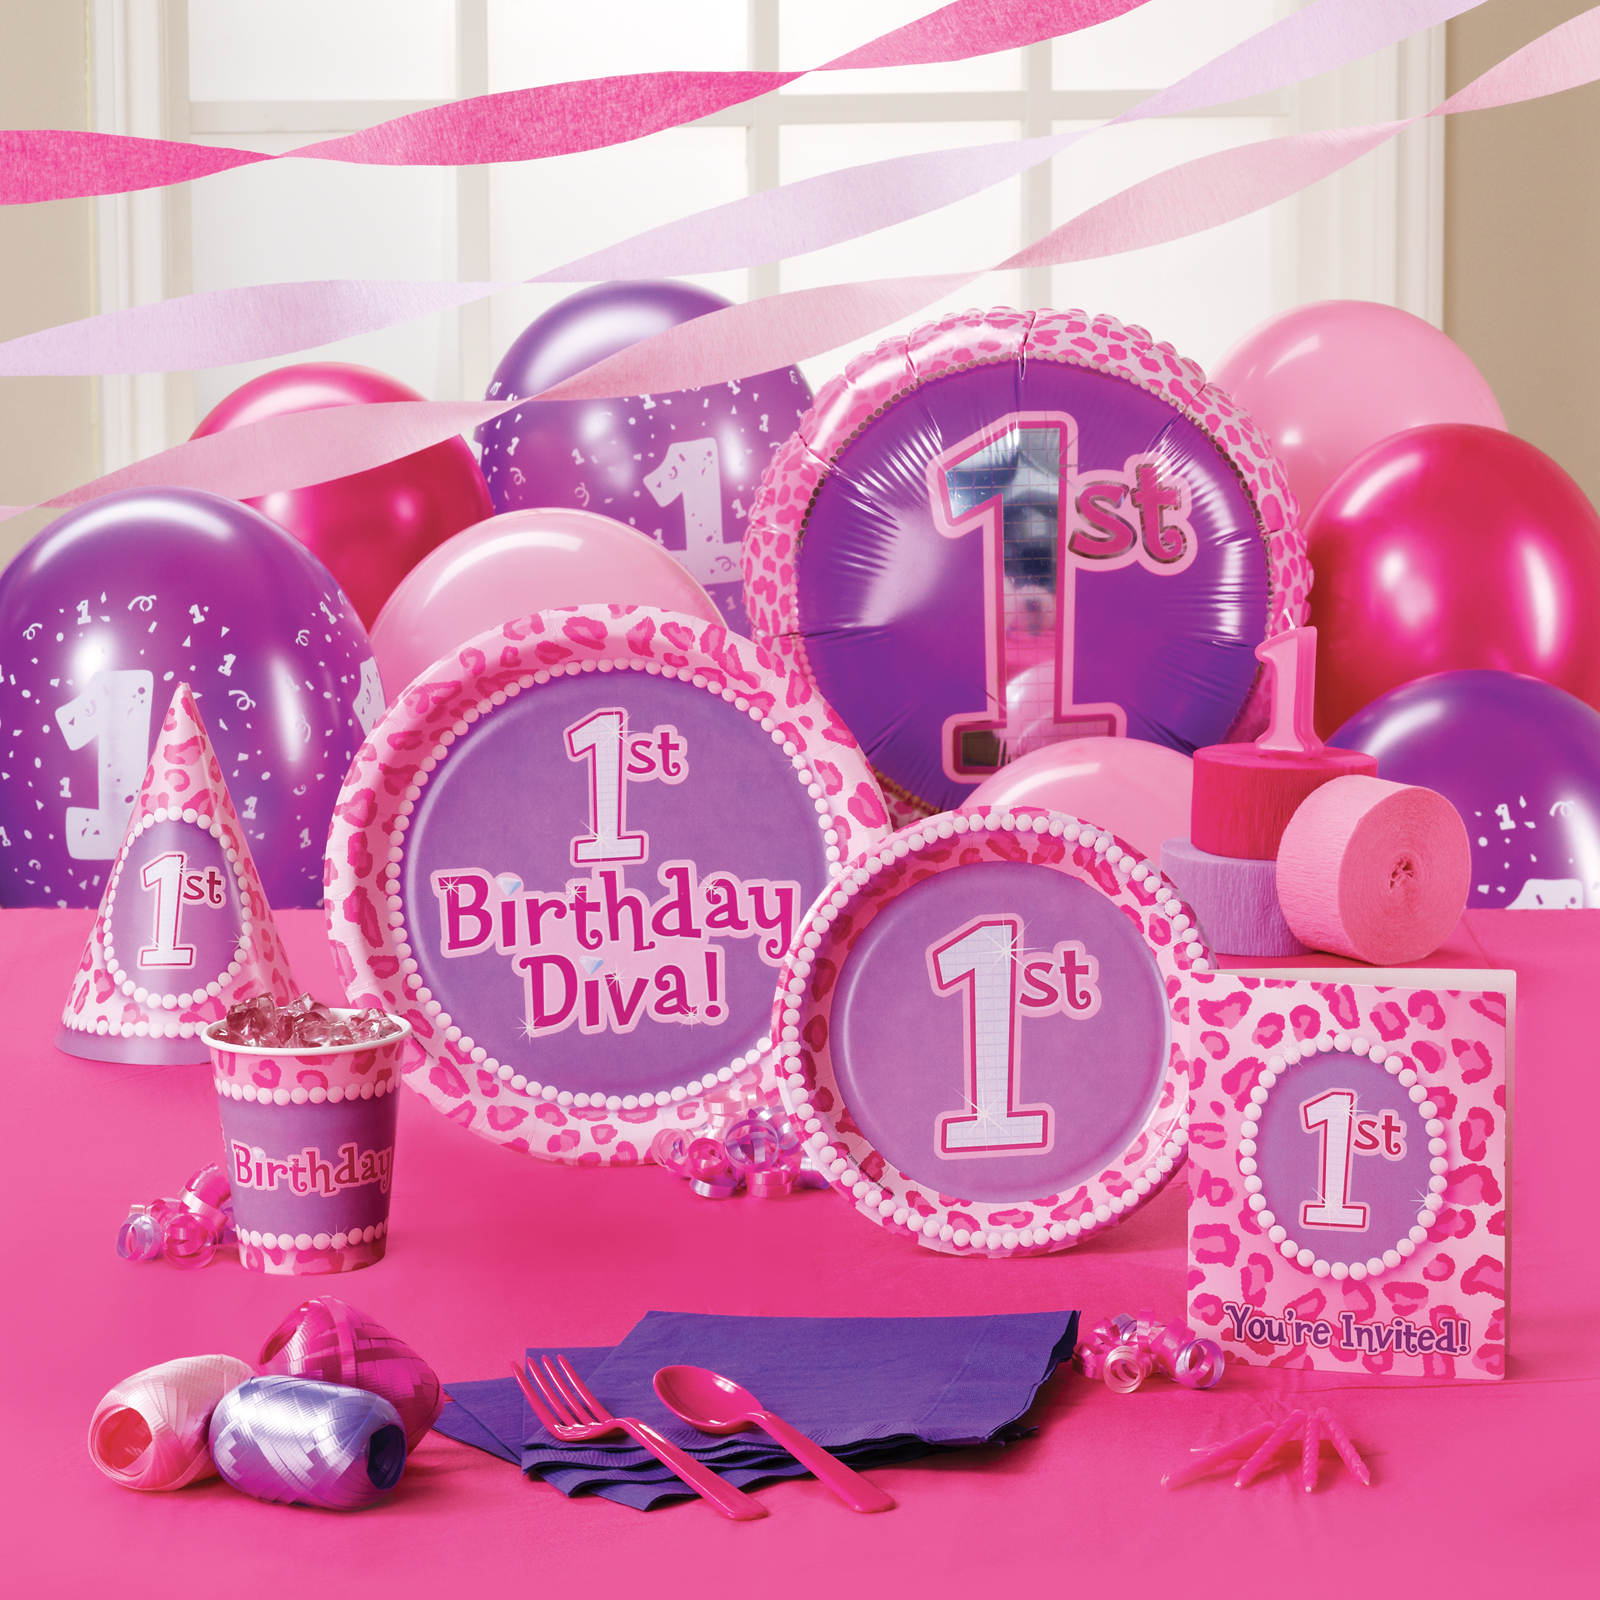 1st Birthday Diva Party Supplies